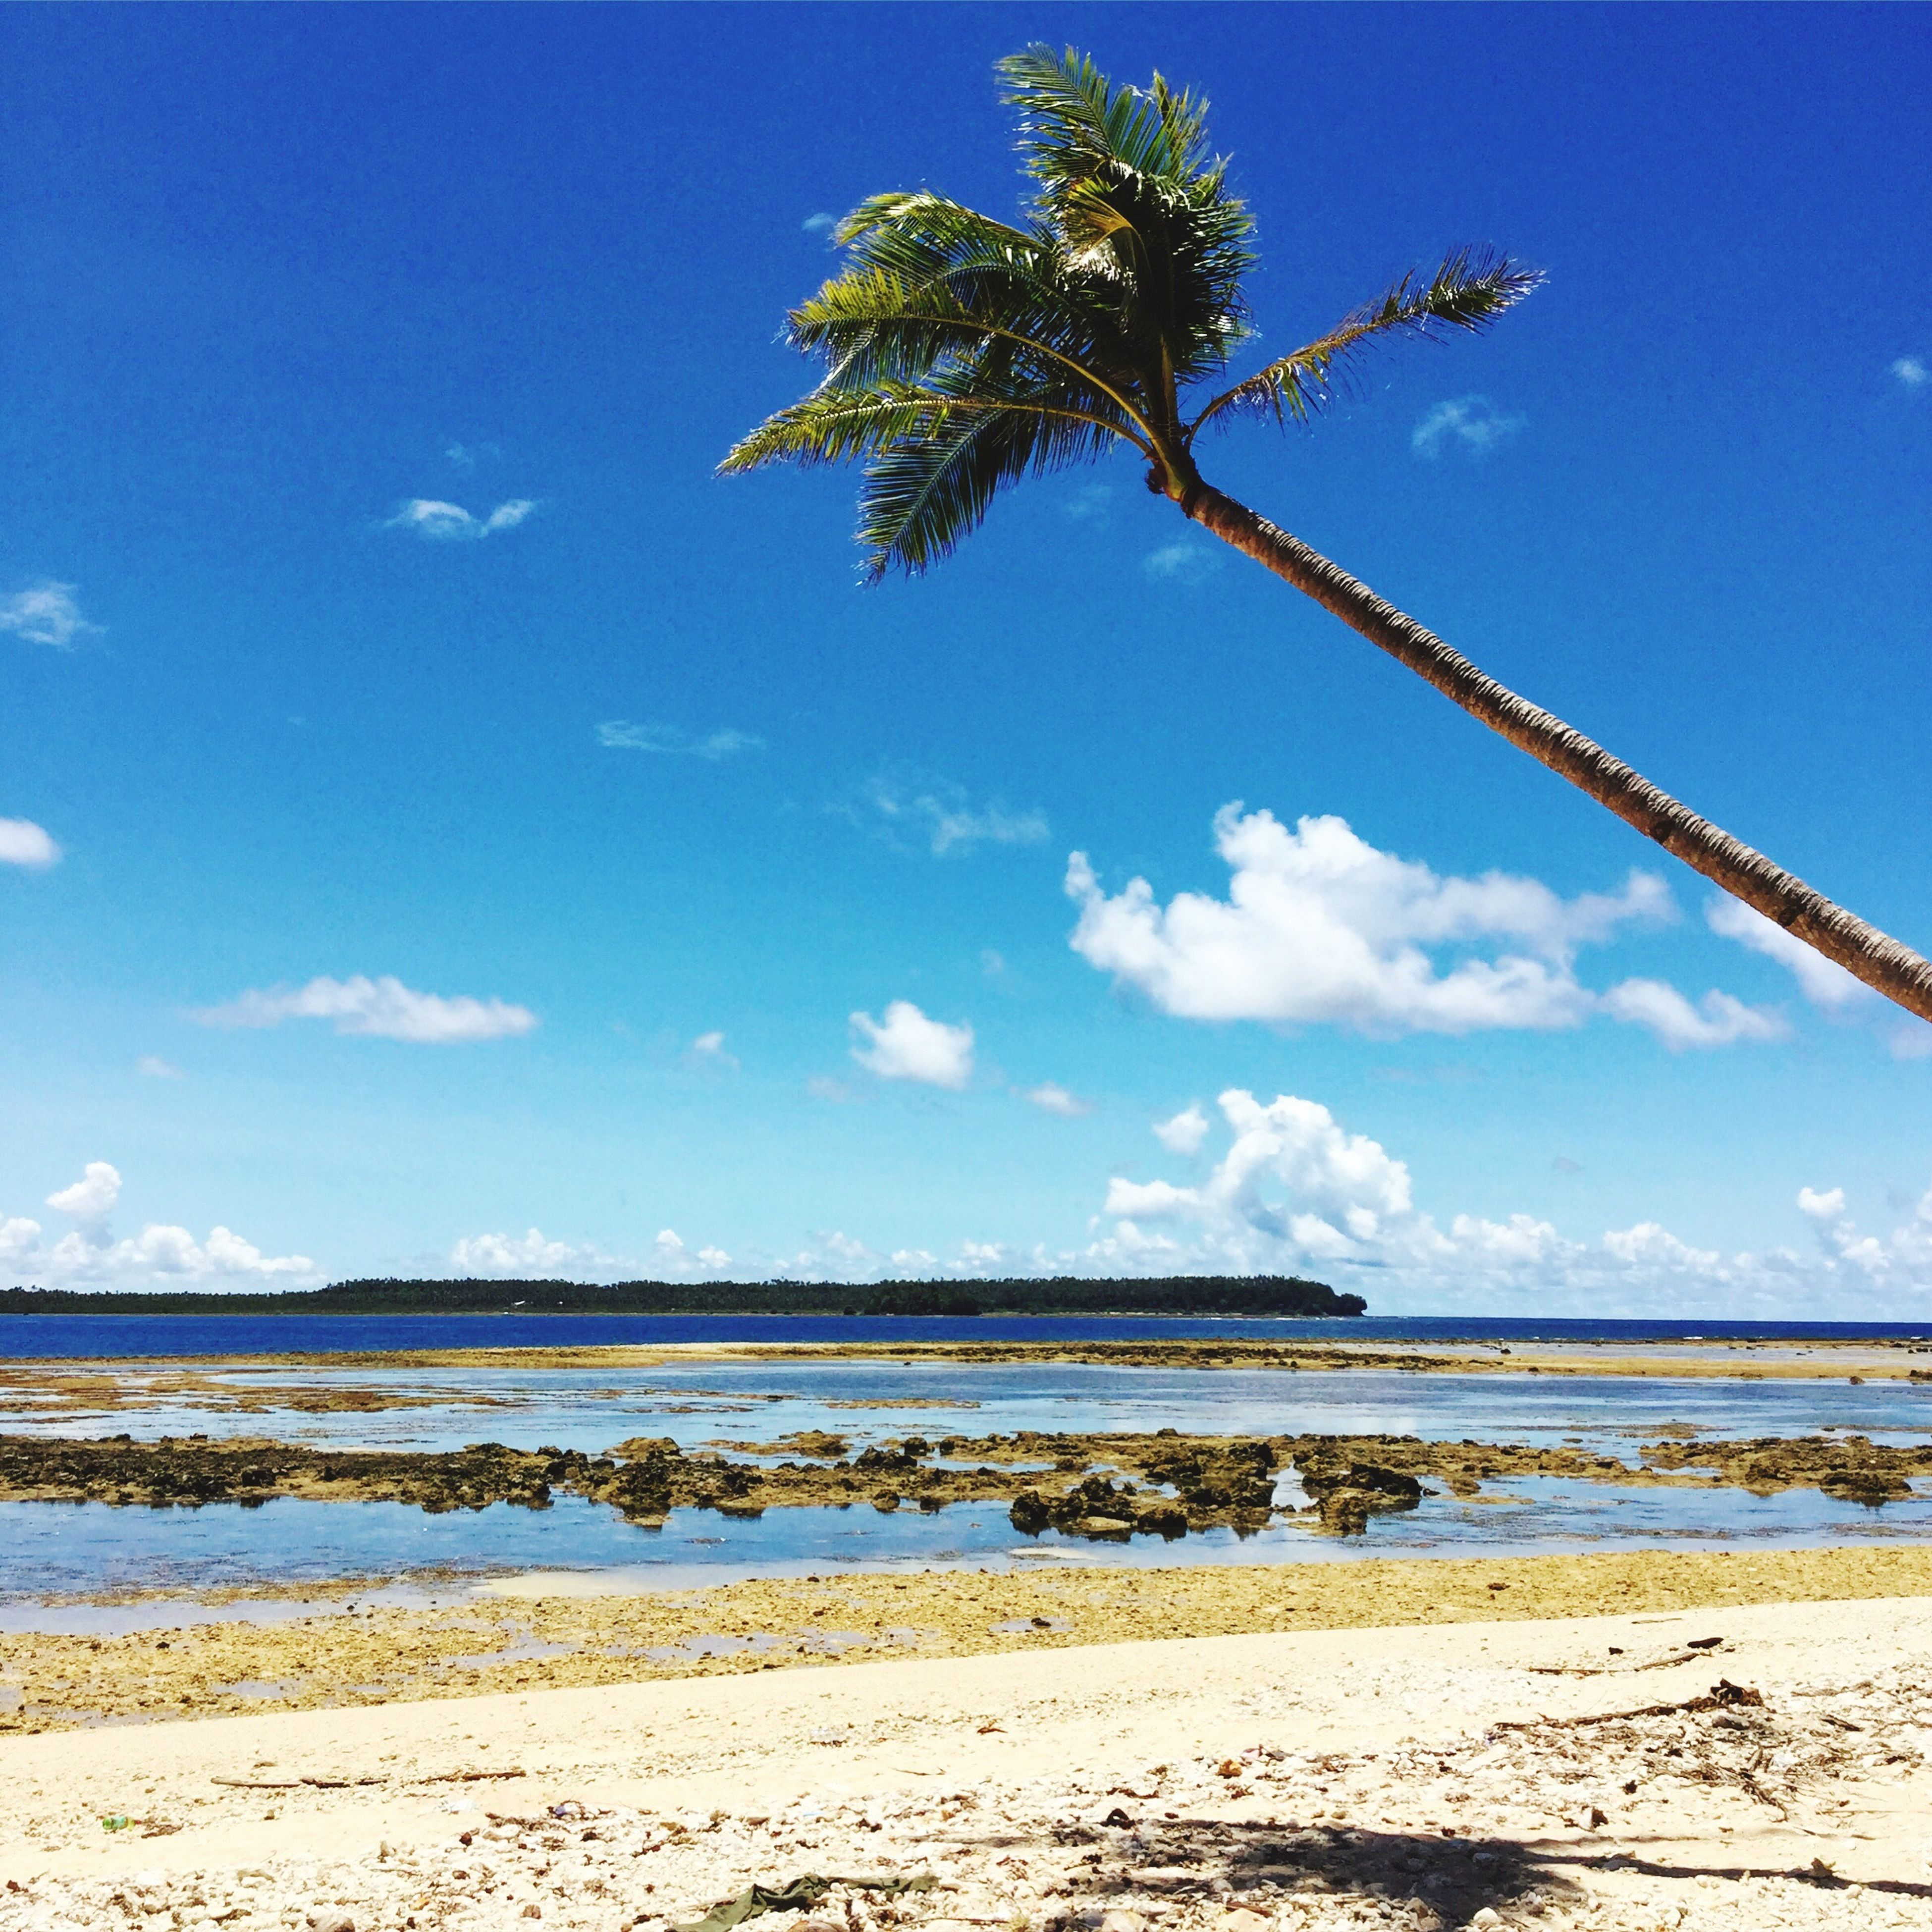 water, blue, tranquility, sky, beach, tranquil scene, sea, scenics, beauty in nature, nature, shore, sand, tree, palm tree, cloud, idyllic, horizon over water, day, growth, no people